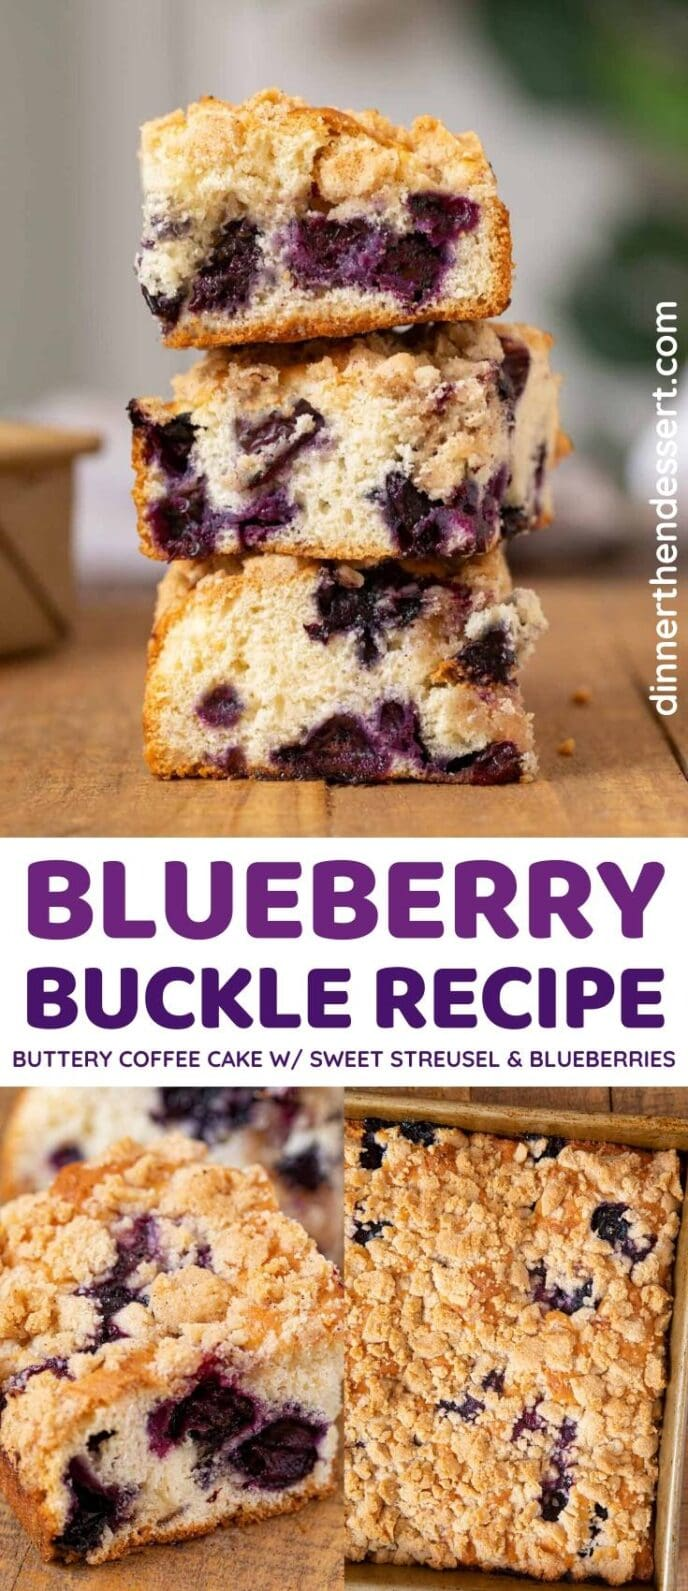 Blueberry Buckle collage